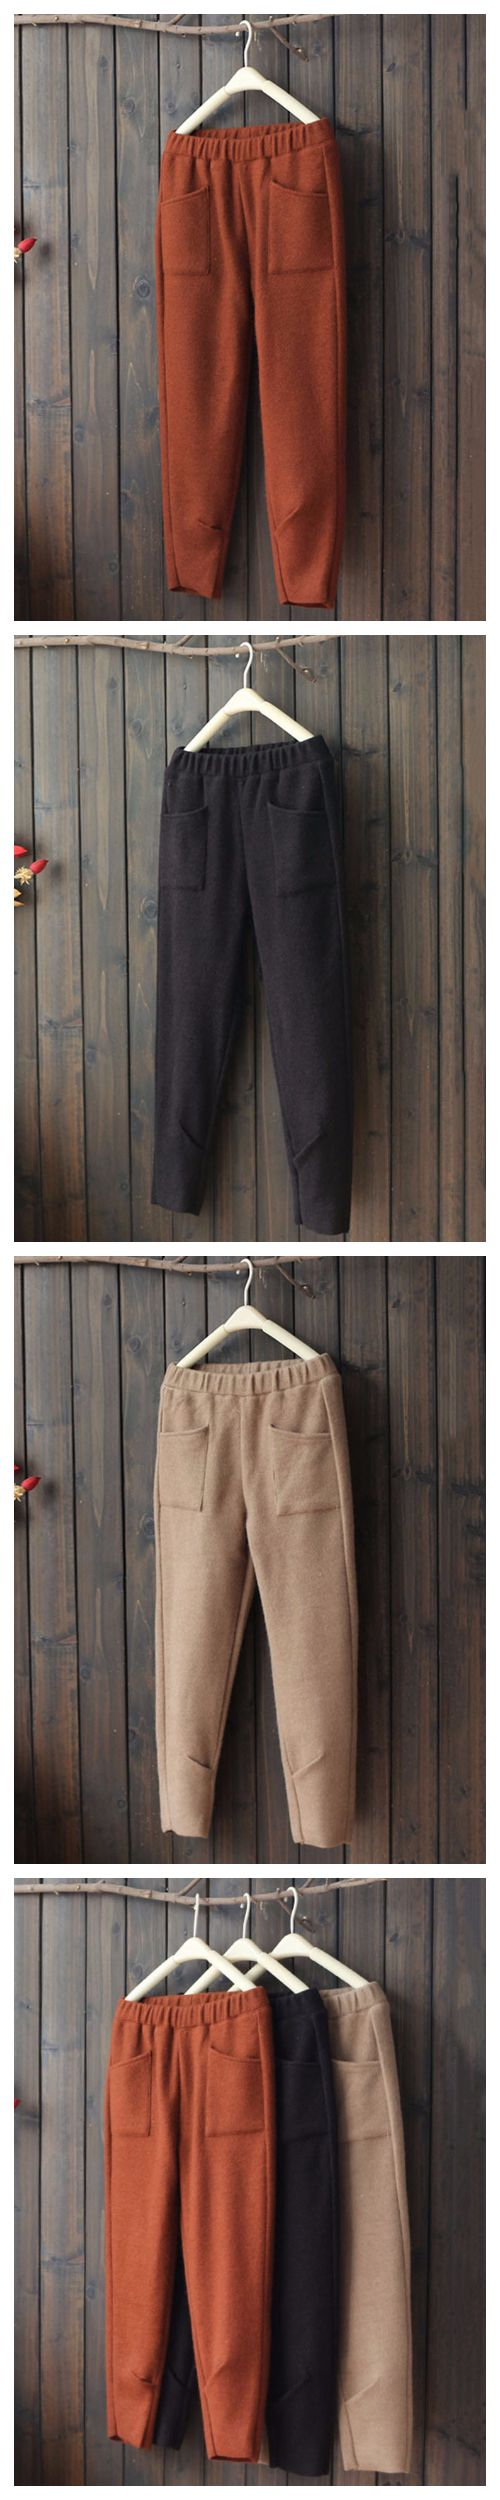 Casual Brief Solid Color Women Elastic Waist Harem Pants